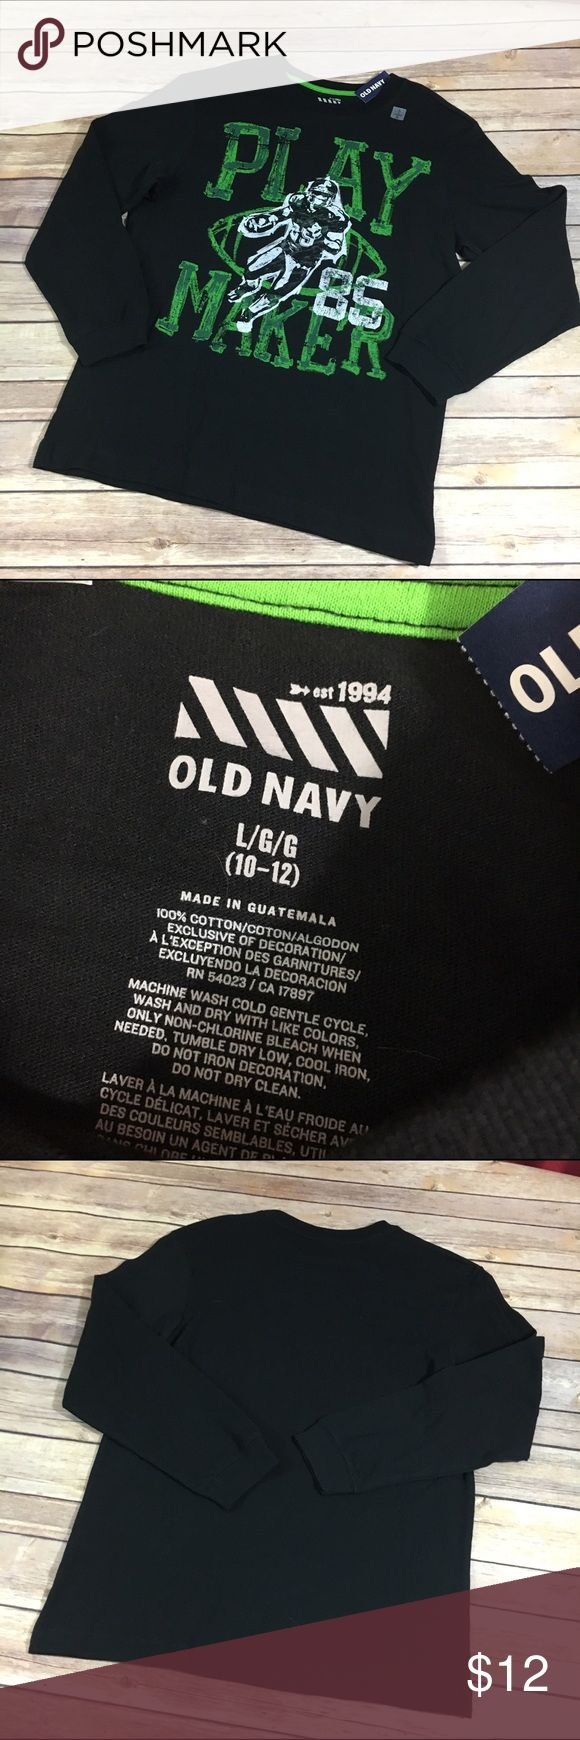 """NEW NWT Old Navy Black Jack Play Maker Football 10 NEW NWT Old Navy Black Jack Play Maker Football Tee 10/12 L  Nice new with tags long sleeve screenprinted tee from Old Navy.  Screenprint of a football player and says """"Play Maker"""".    #new #nwt #tee #playmaker #football #black #white #green #shirt #sports #afterschoolactivities Old Navy Shirts & Tops Tees - Long Sleeve"""